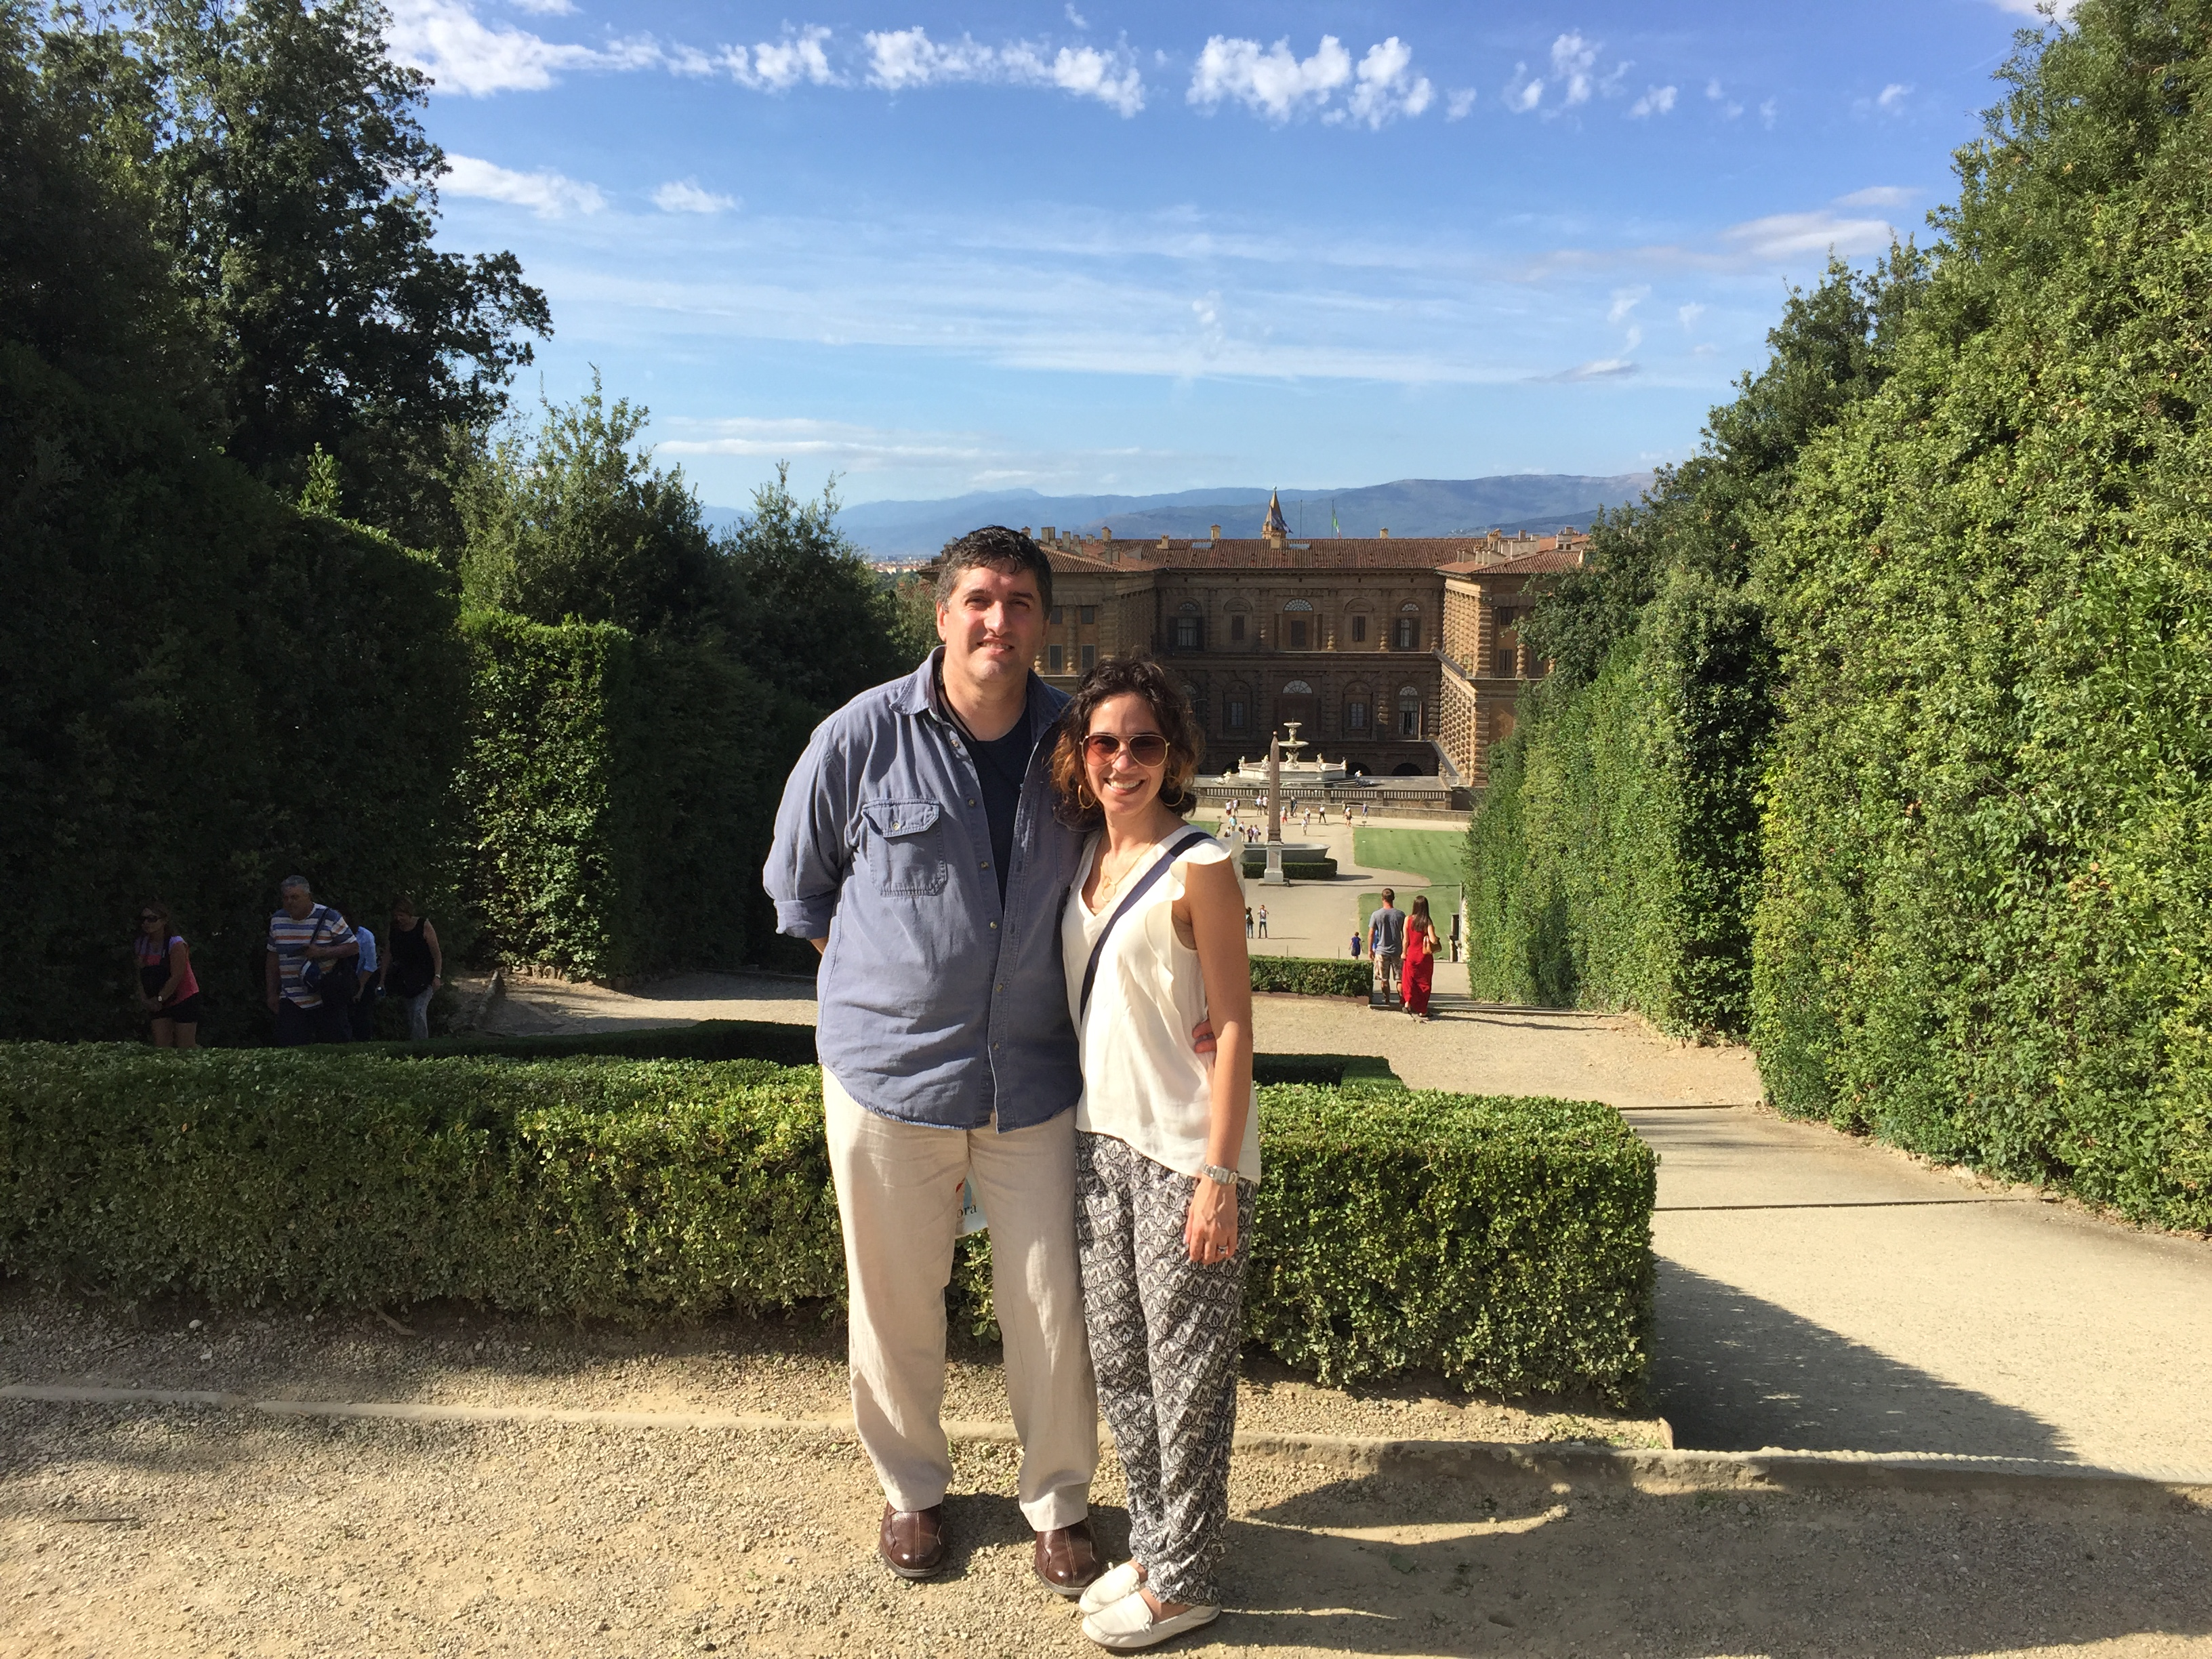 Boboli Gardens with the Palazzo Pitti in the background